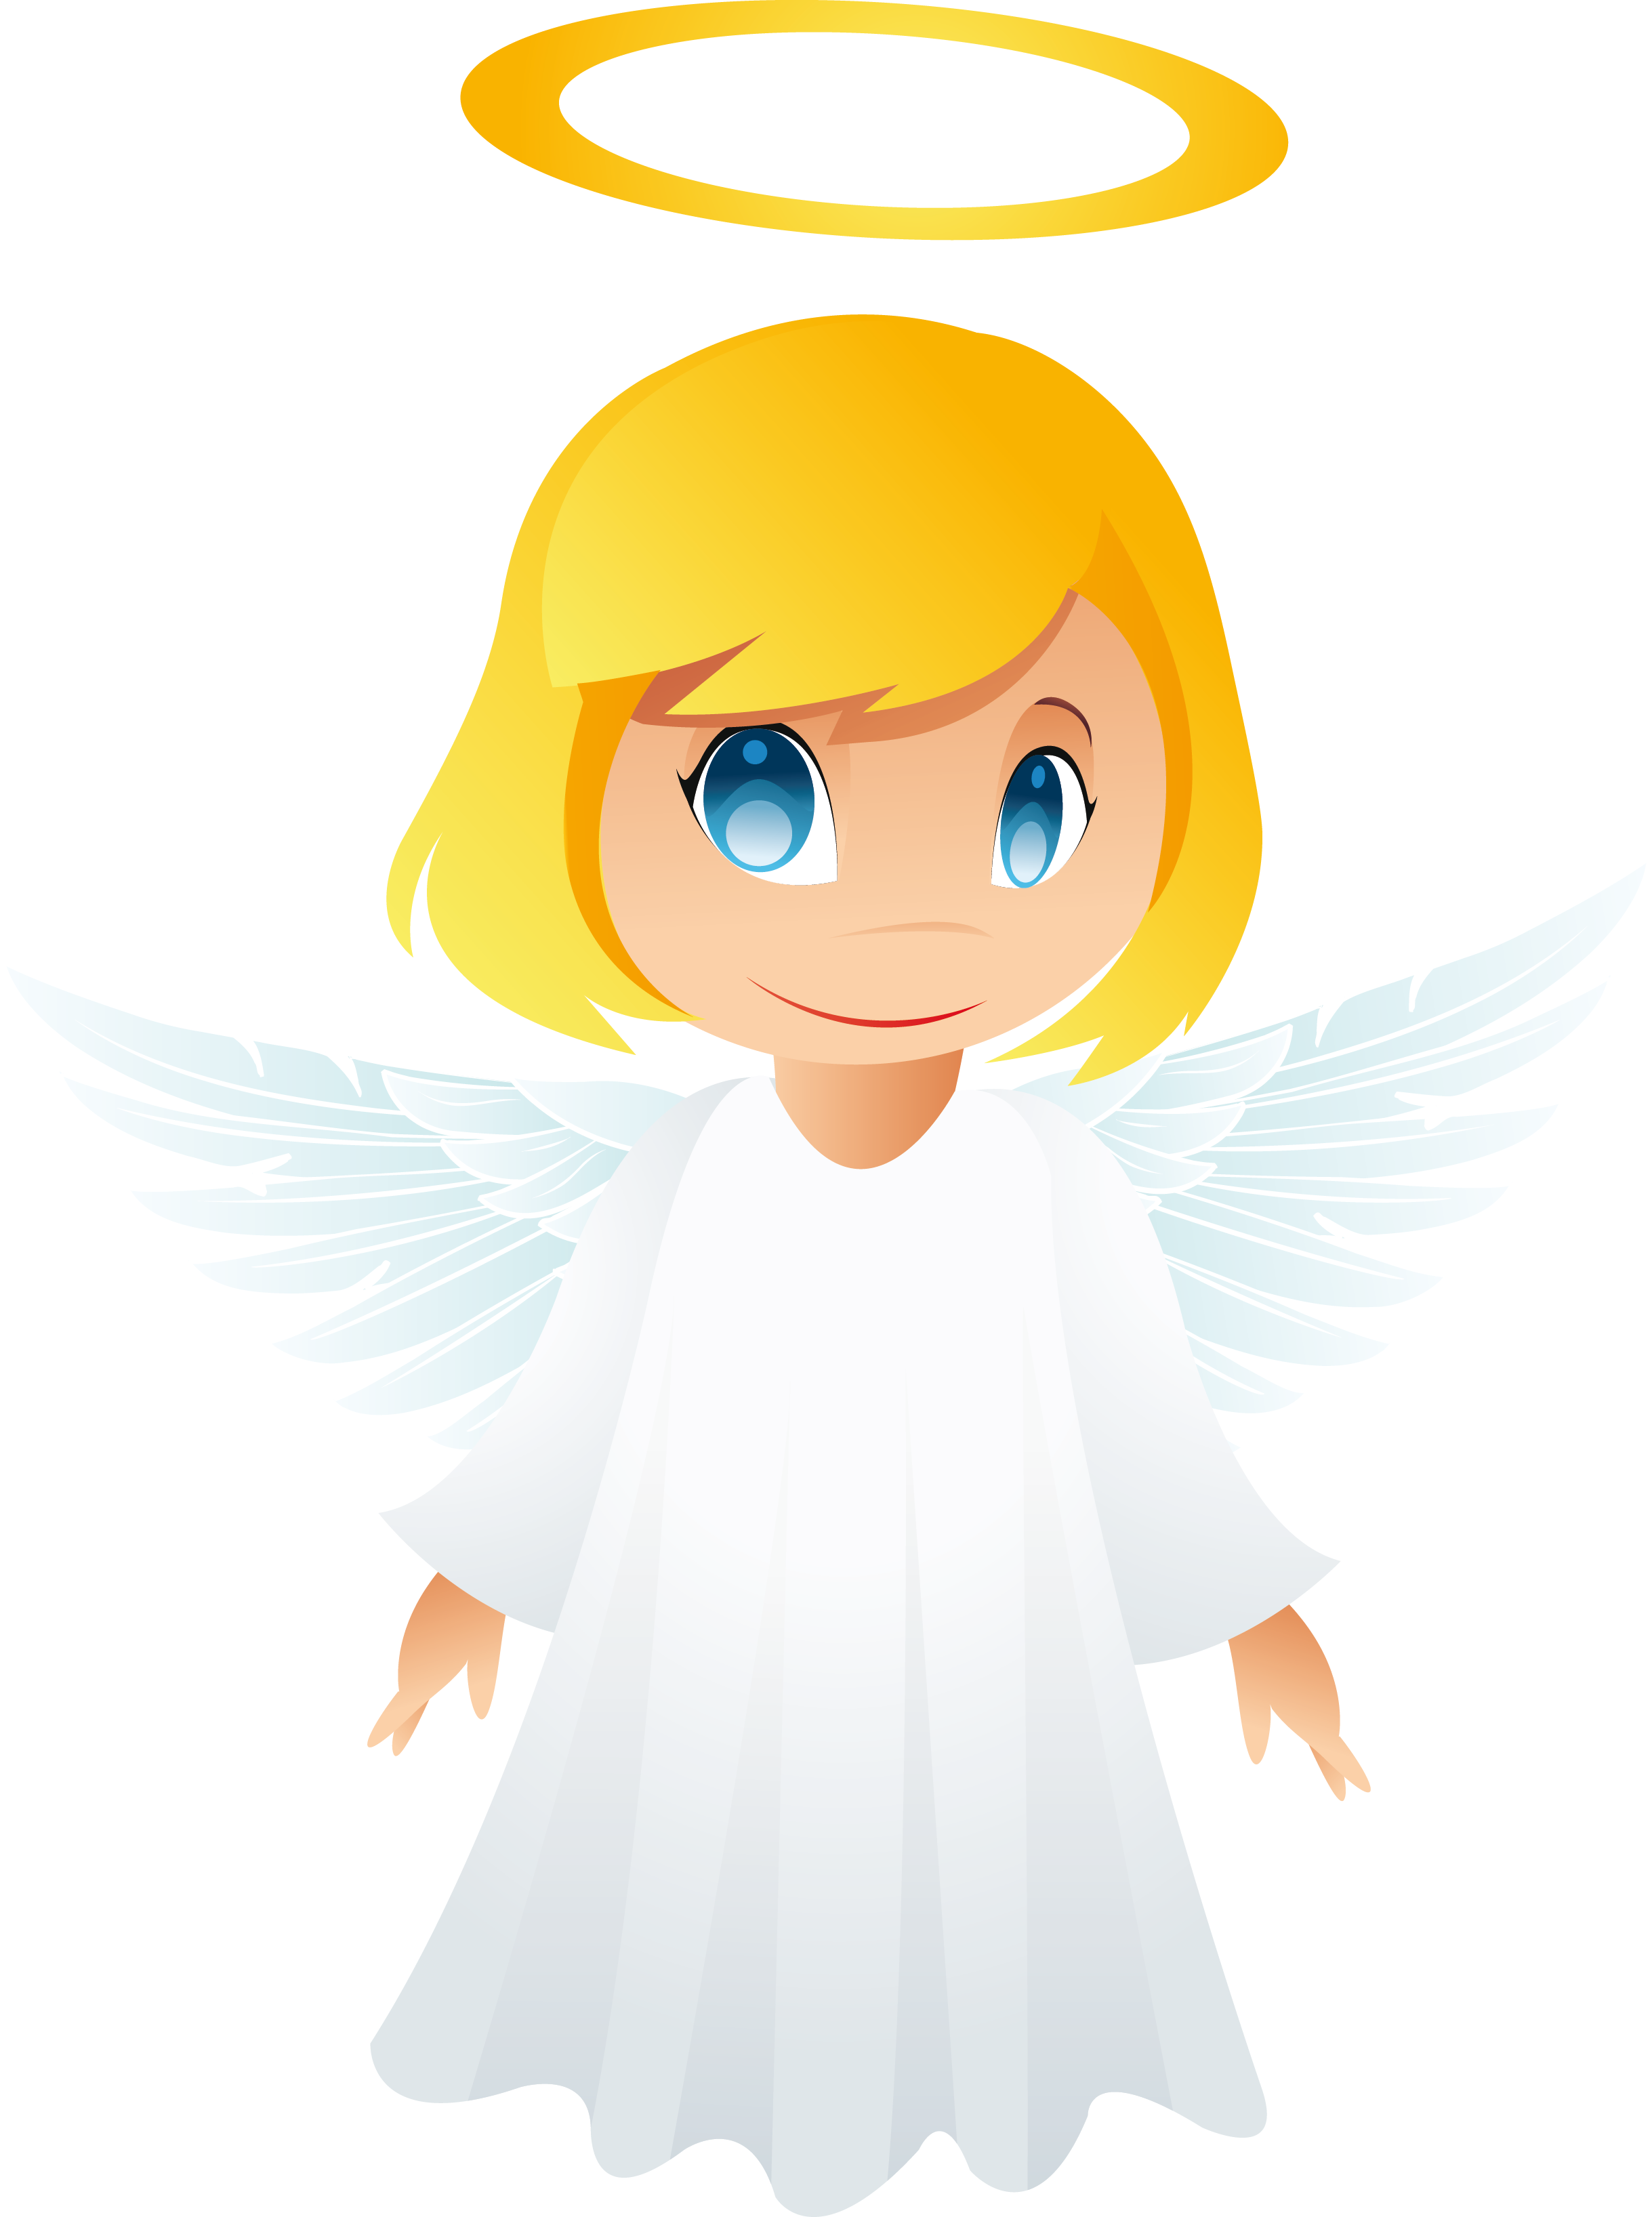 Clipart Angel - Cliparts.co